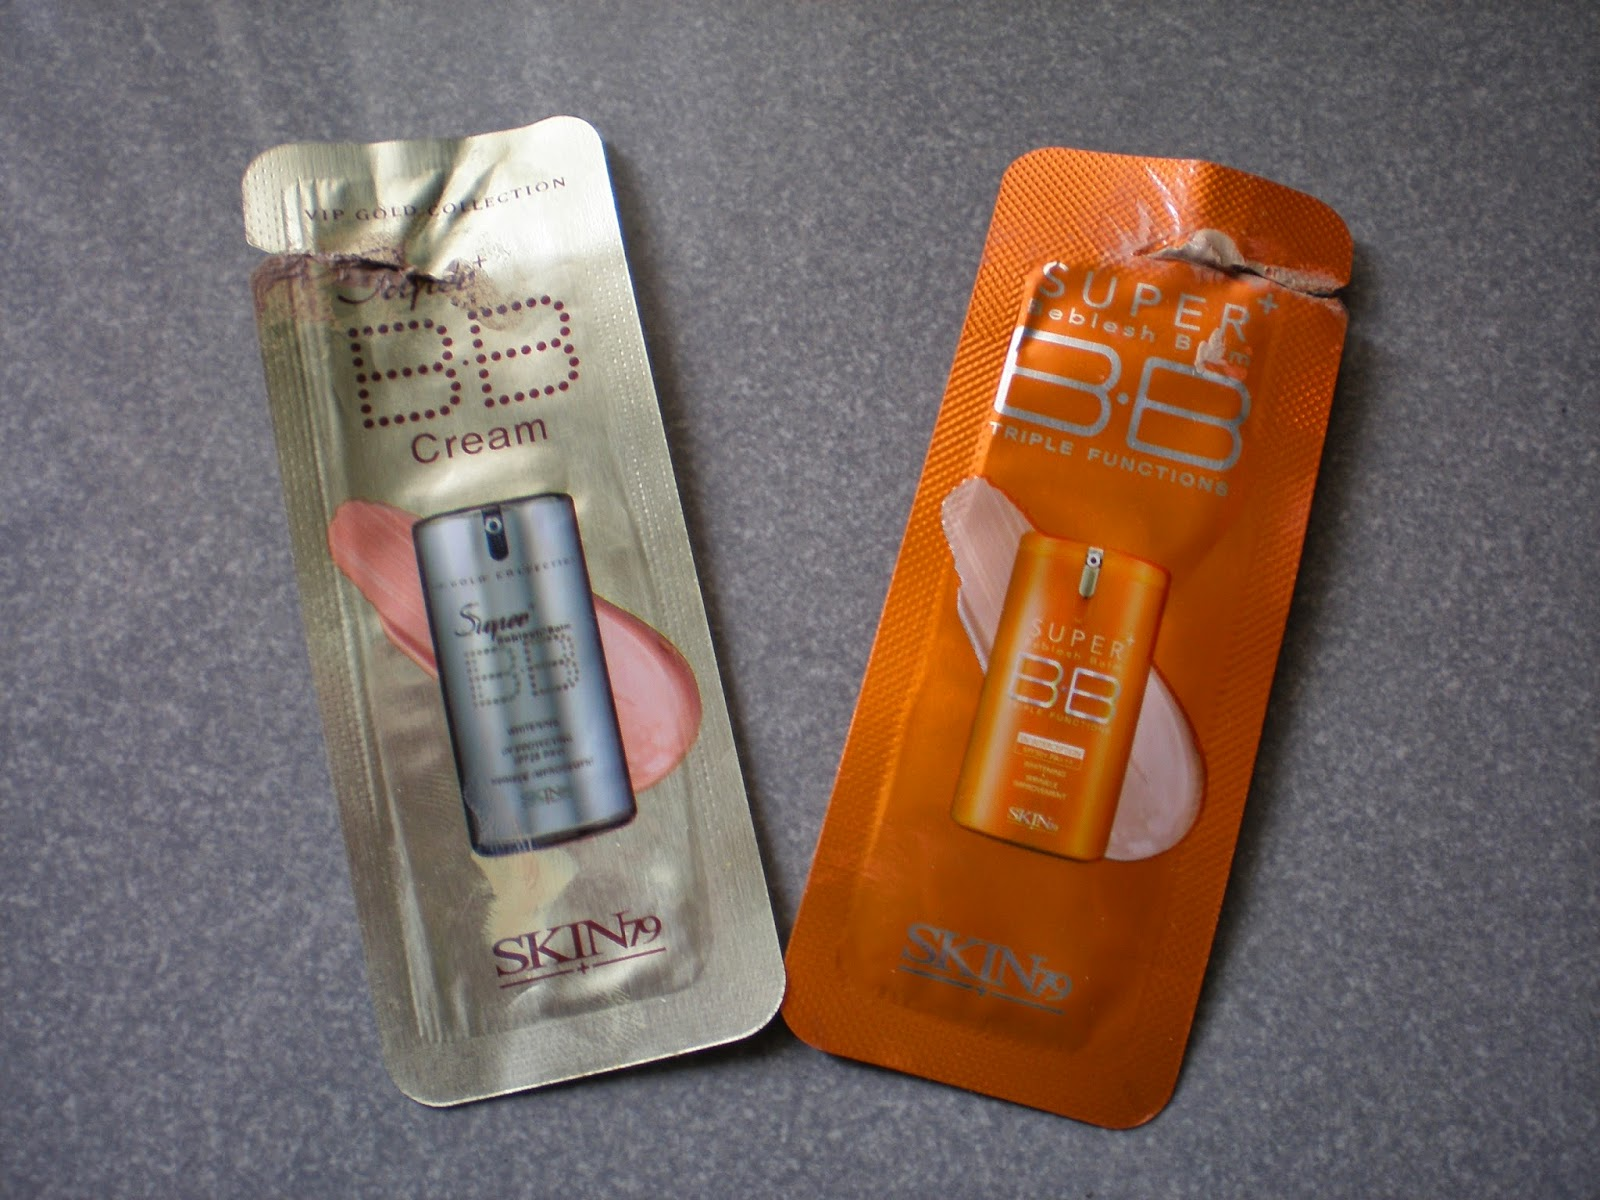 Skin79 Gold VIP and Skin79 Orange Super+ BB creams